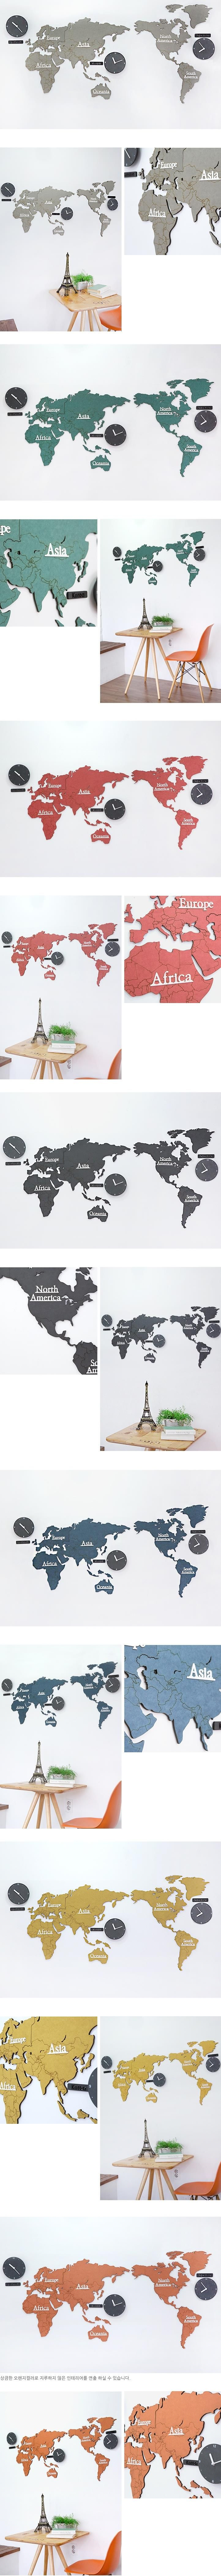 Best Ideas About Time Zone Map On Pinterest Show World Map - World map time zones now